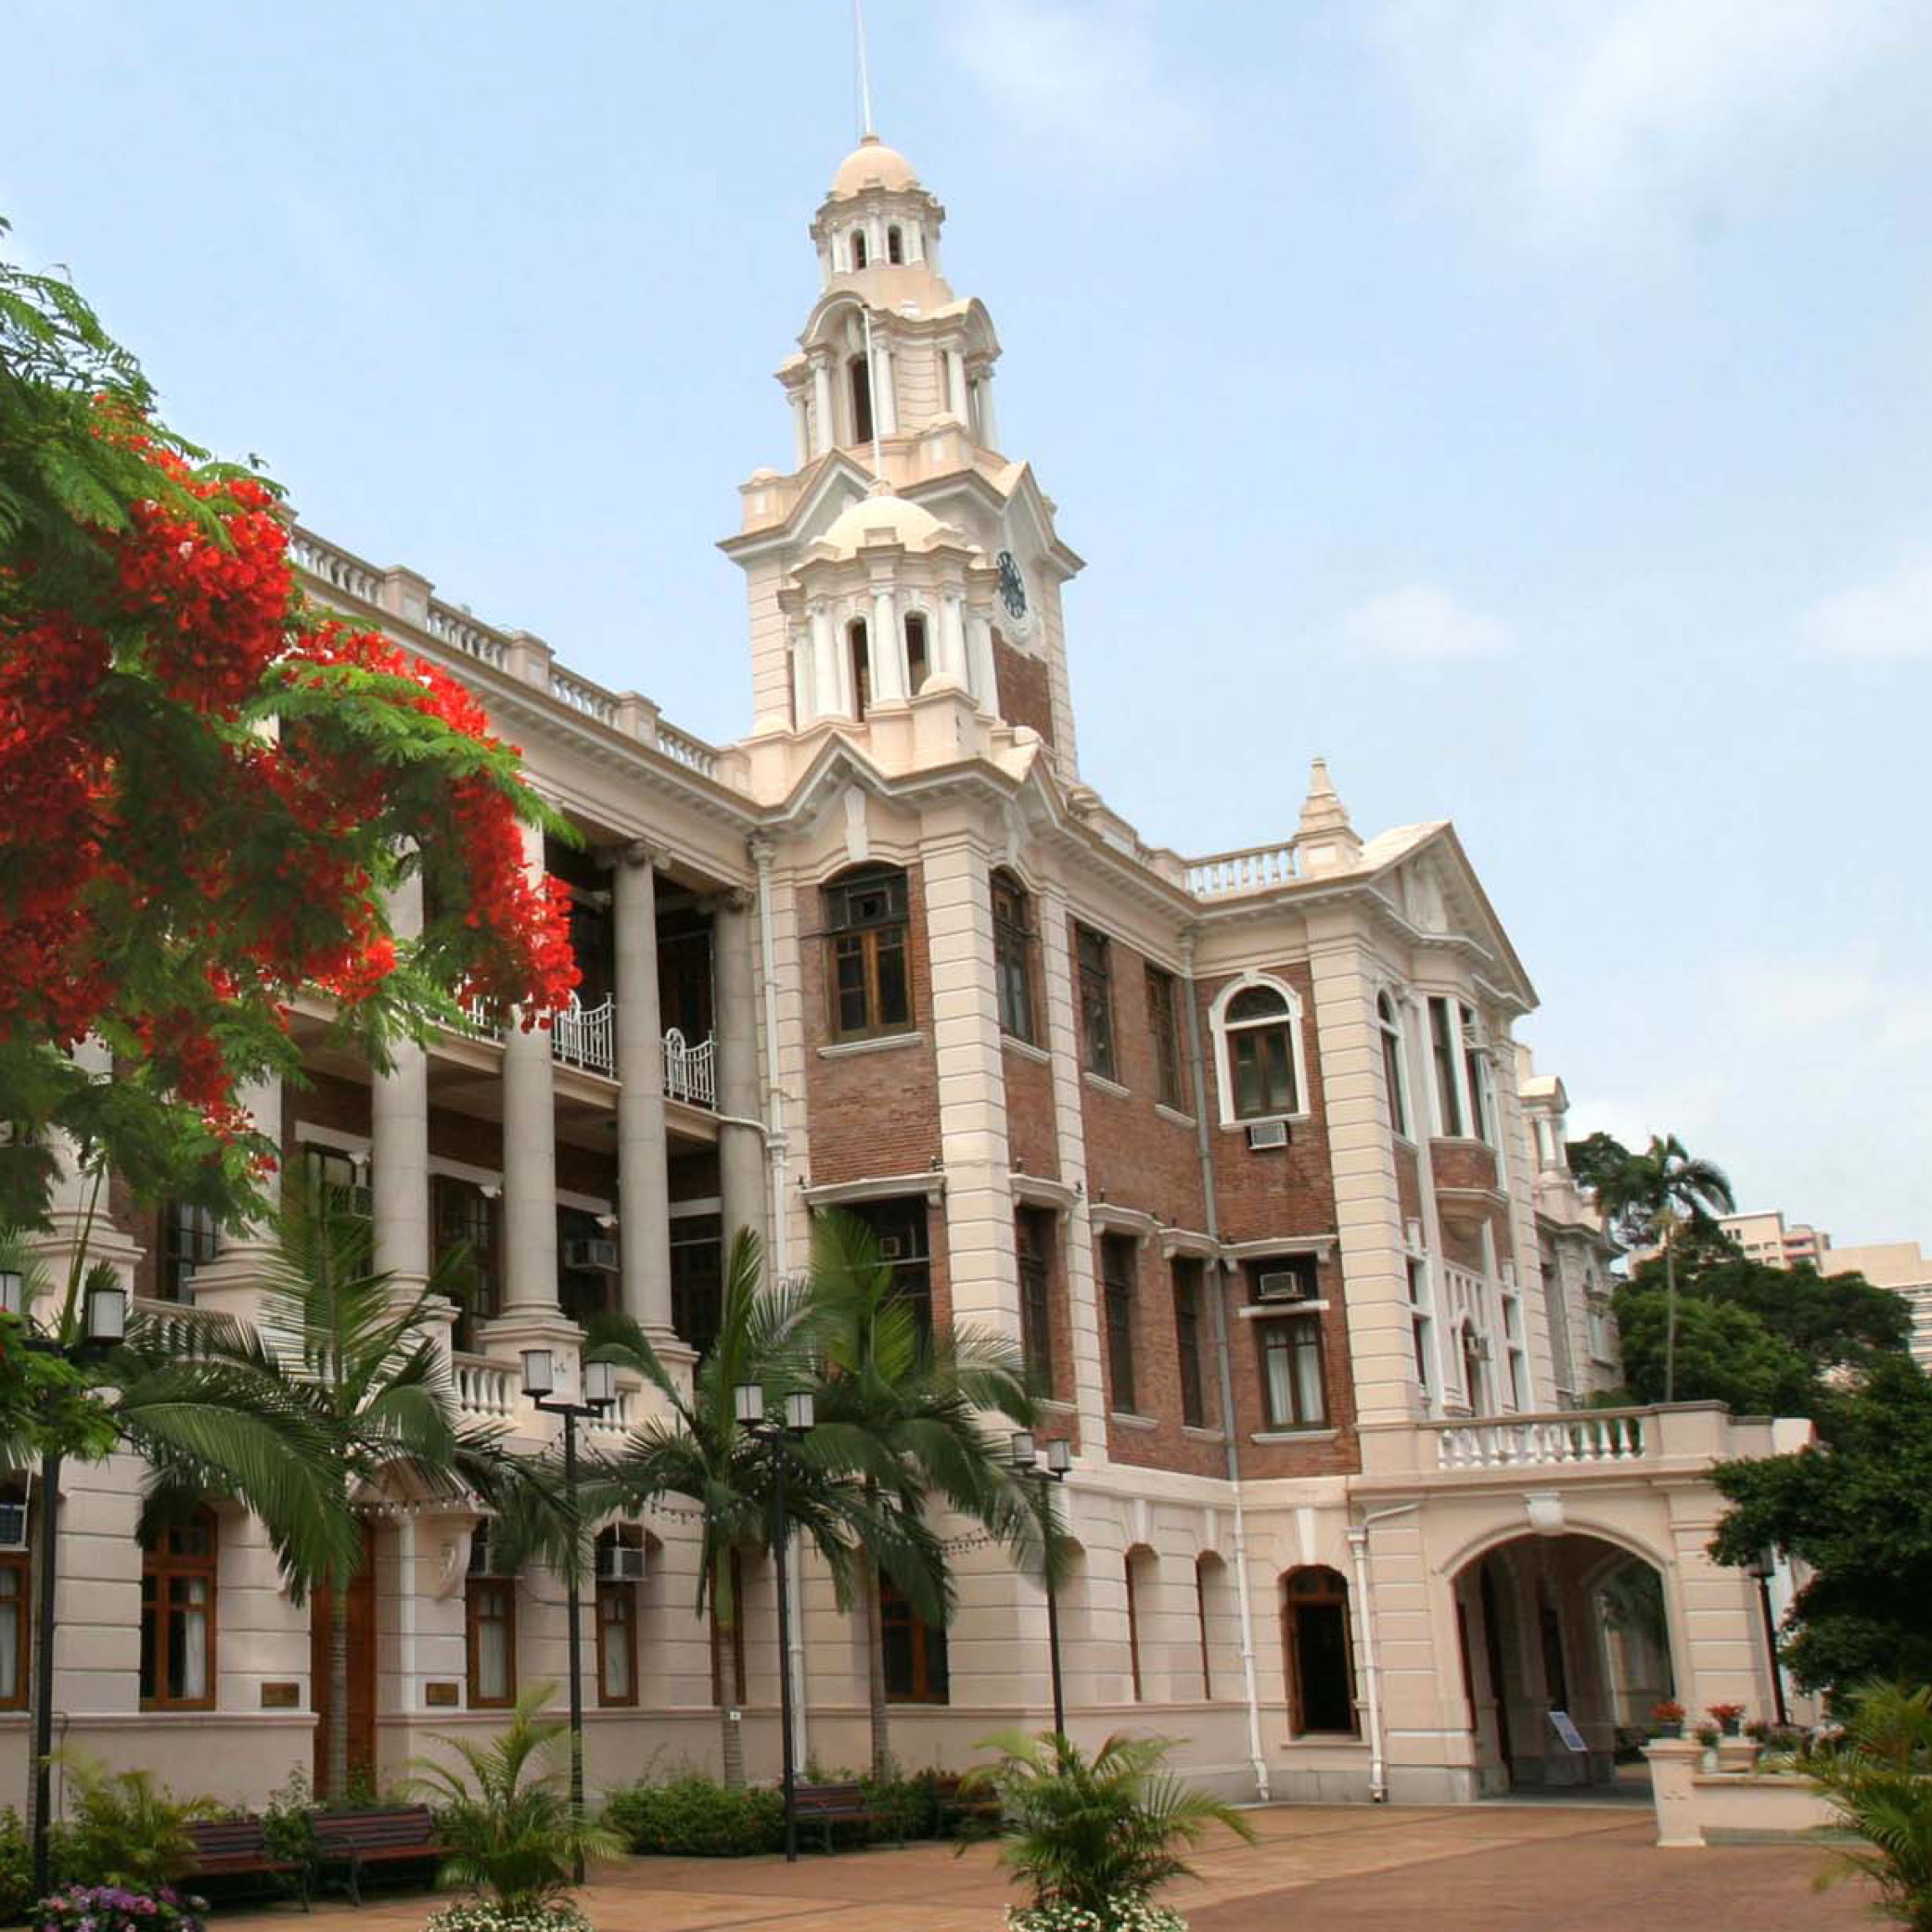 HKU Main Building.